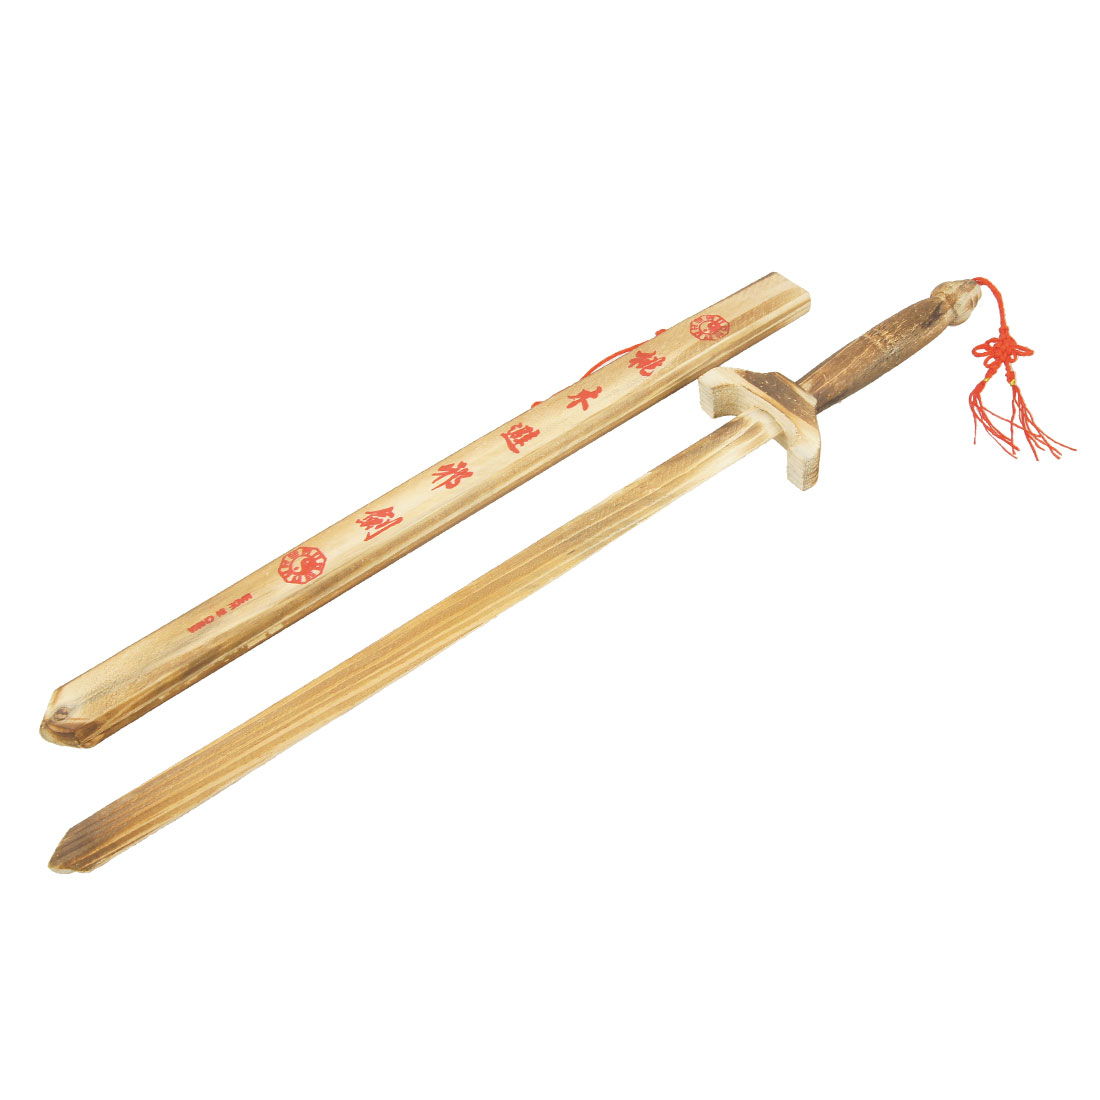 Red Tassel Detailing Chinese Characters Print Scabbard Wooden Toy Broadsword